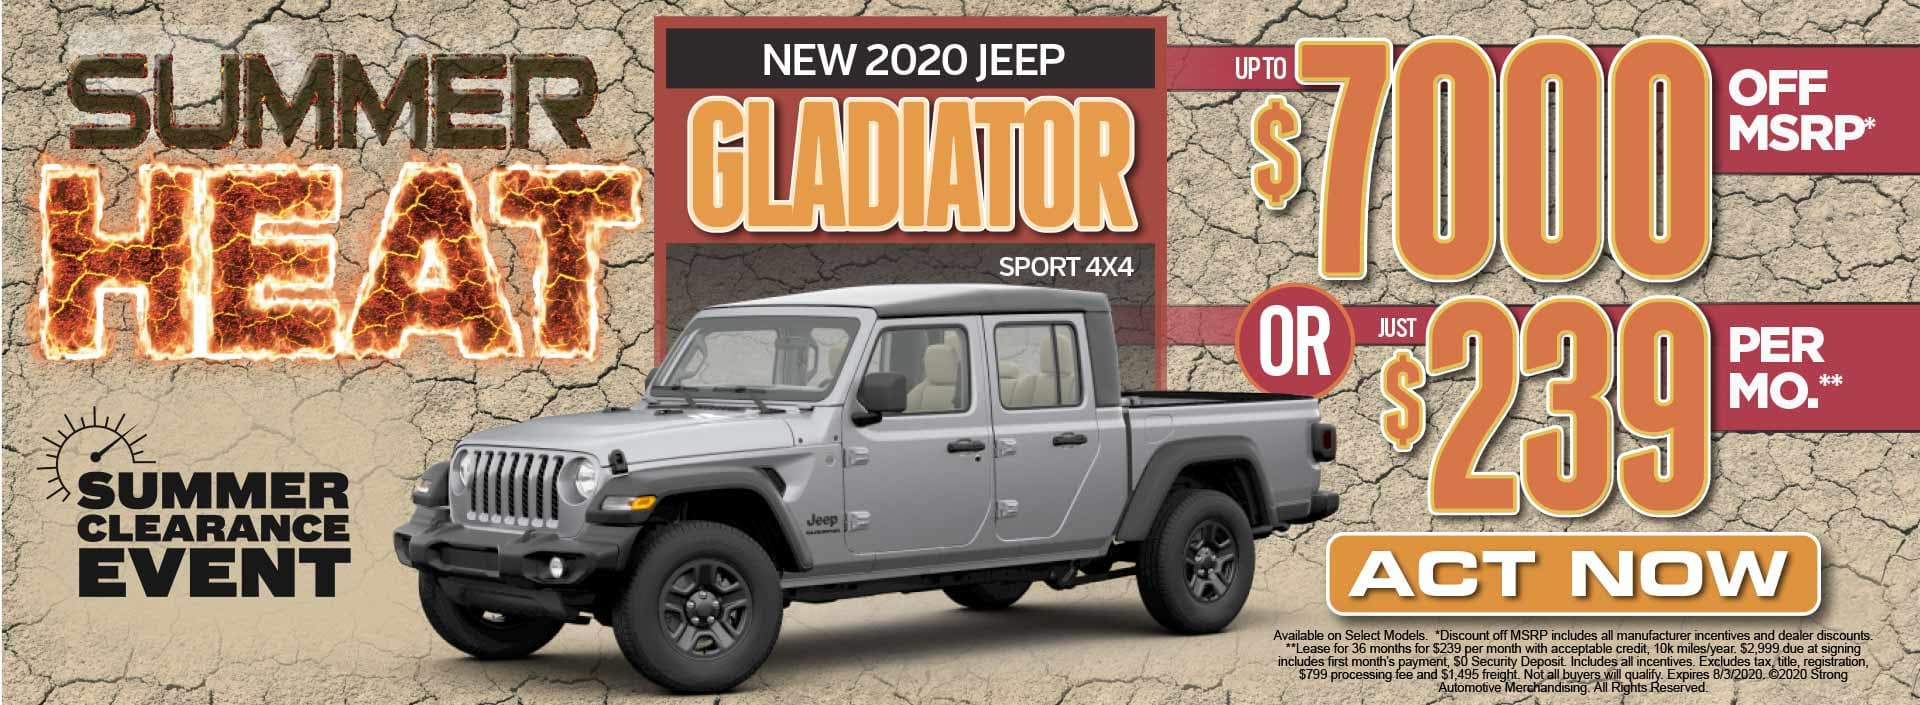 New 2020 Jeep Gladiator up to $7000 Off MSRP* Act Now